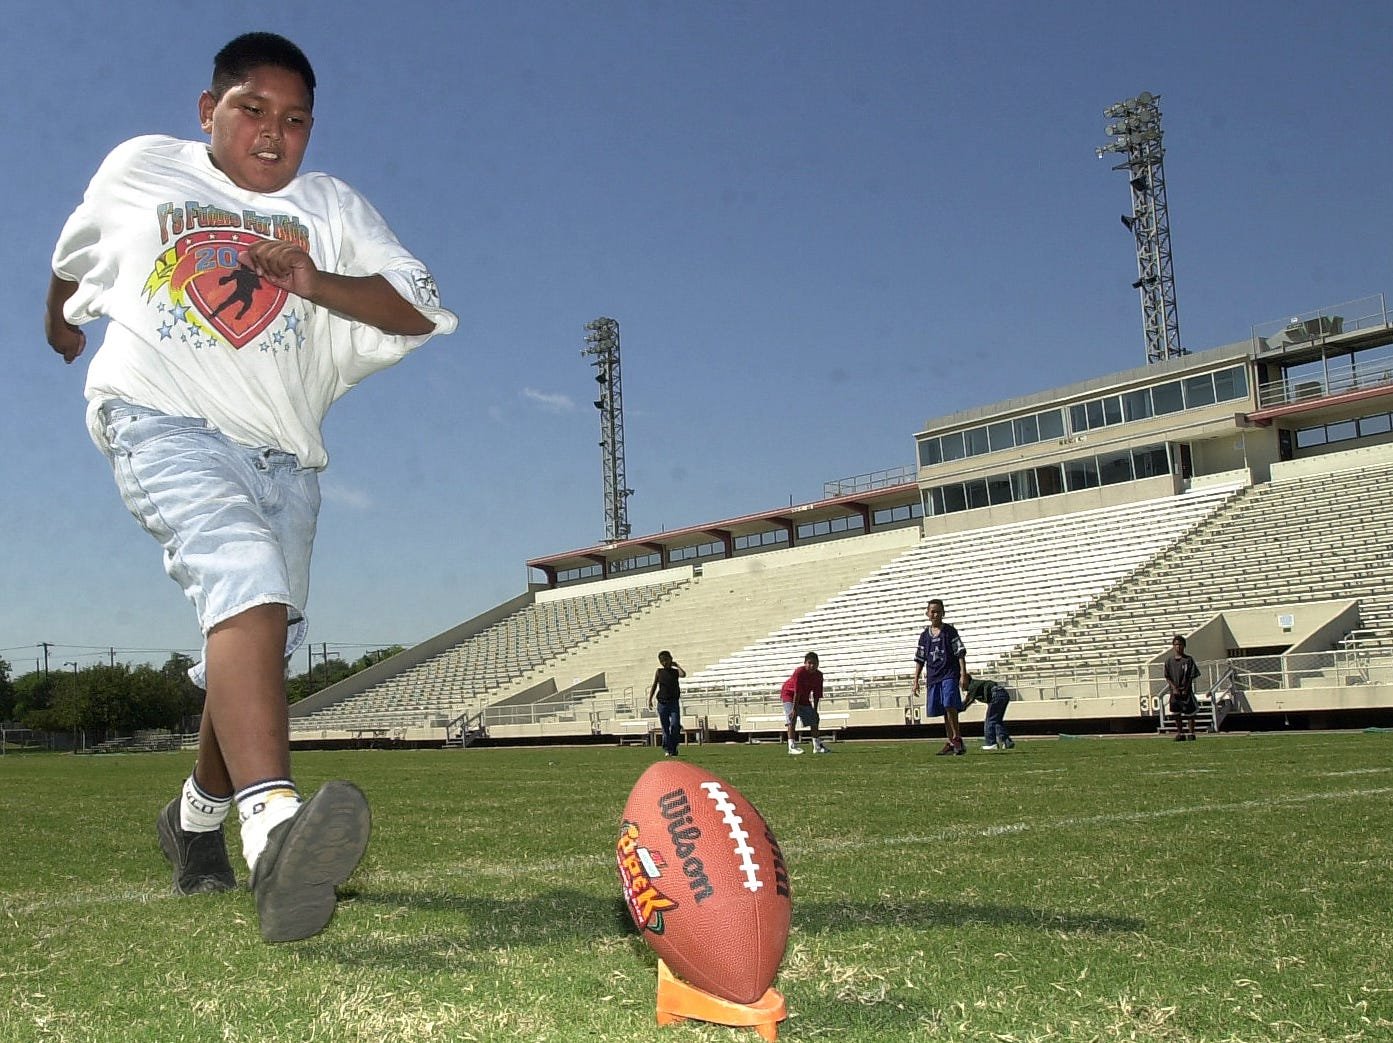 Enrique Pesina, 11, keeps hie eyes on the ball as he lines up for a practice kick during the NFL Punt, Pass and Kick Competition Sept. 29, 2001 at Buc Stadium.